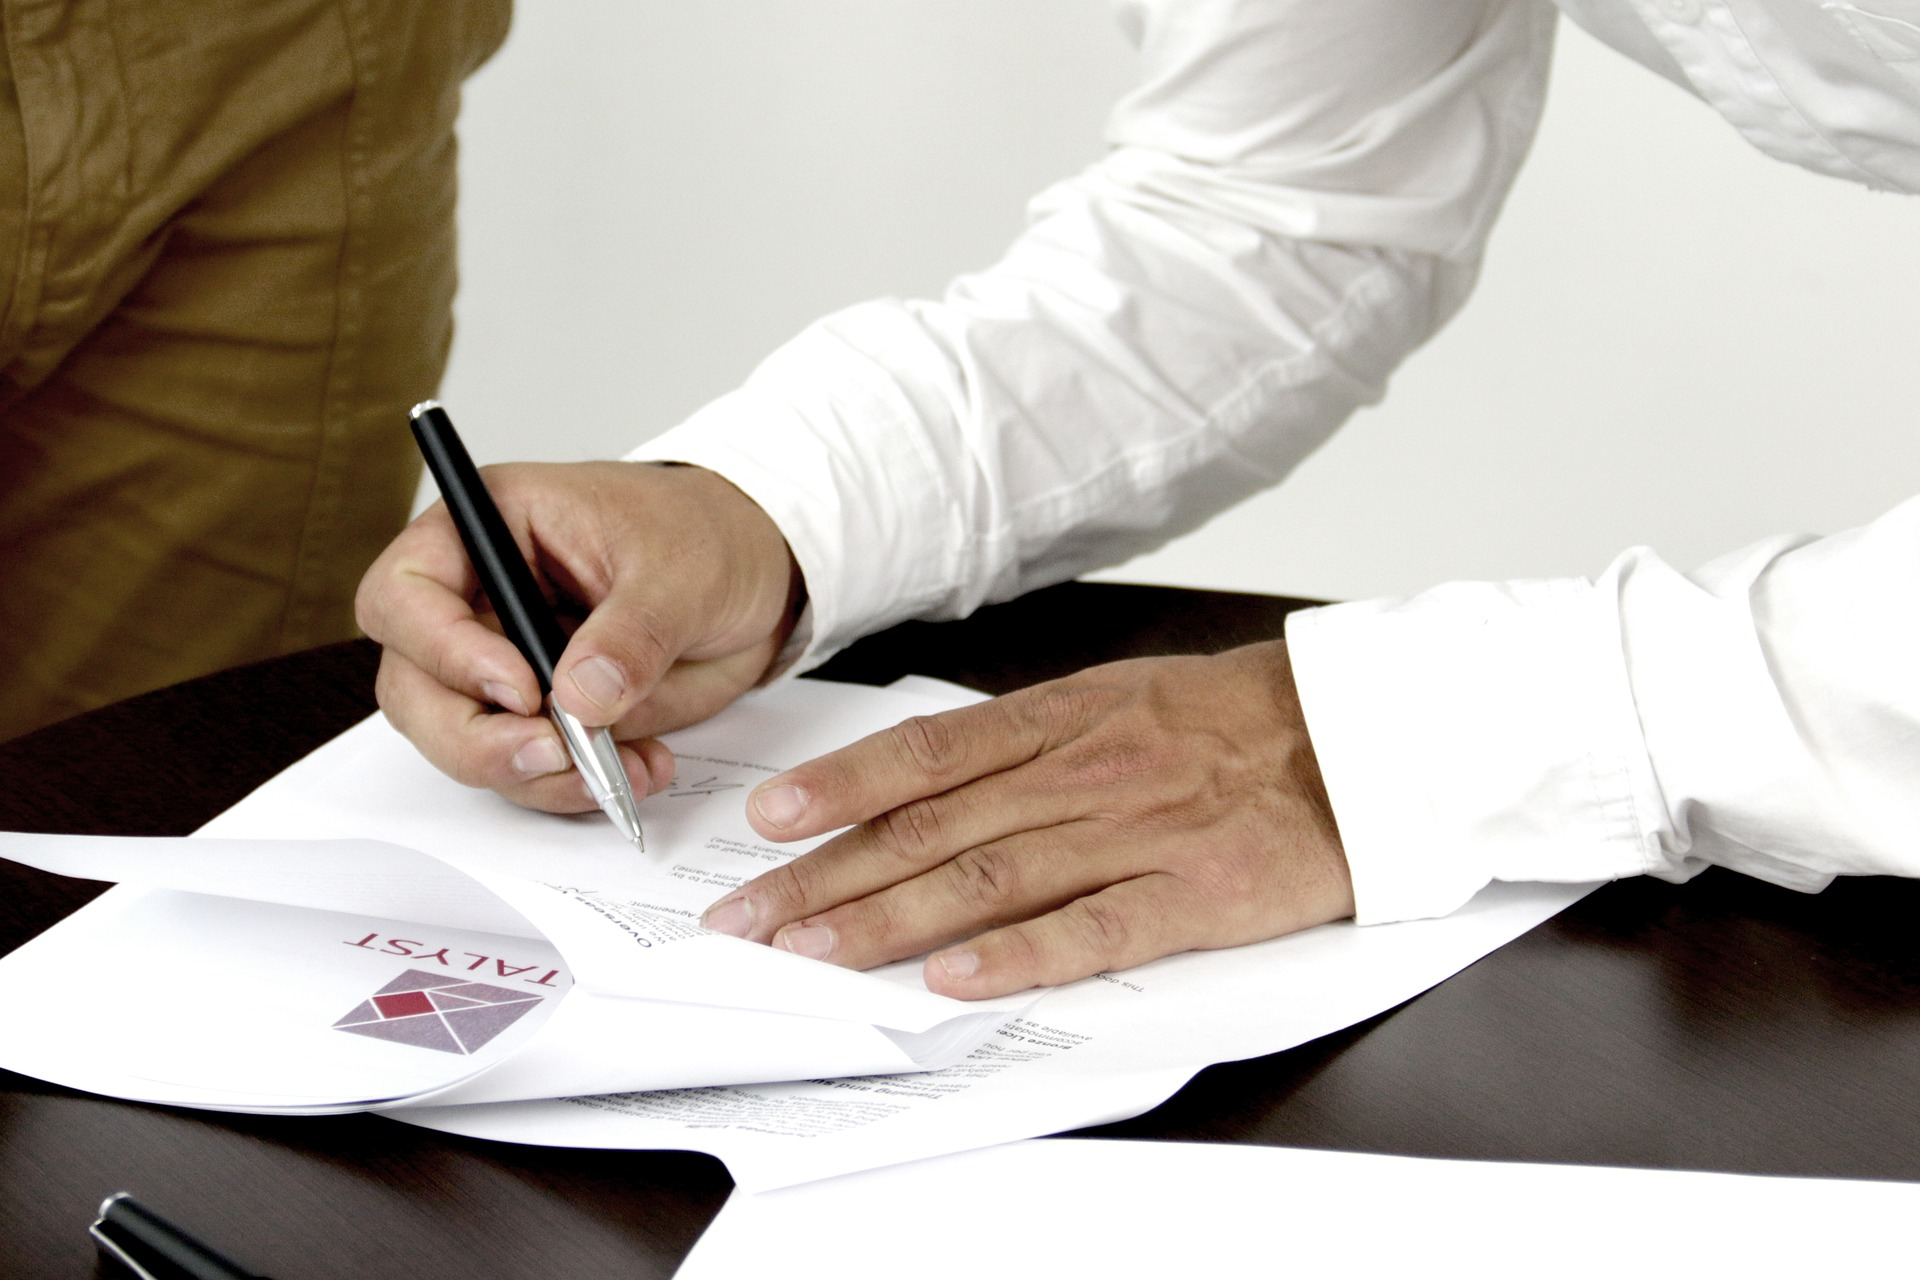 Man signing documents on dark table with another person present